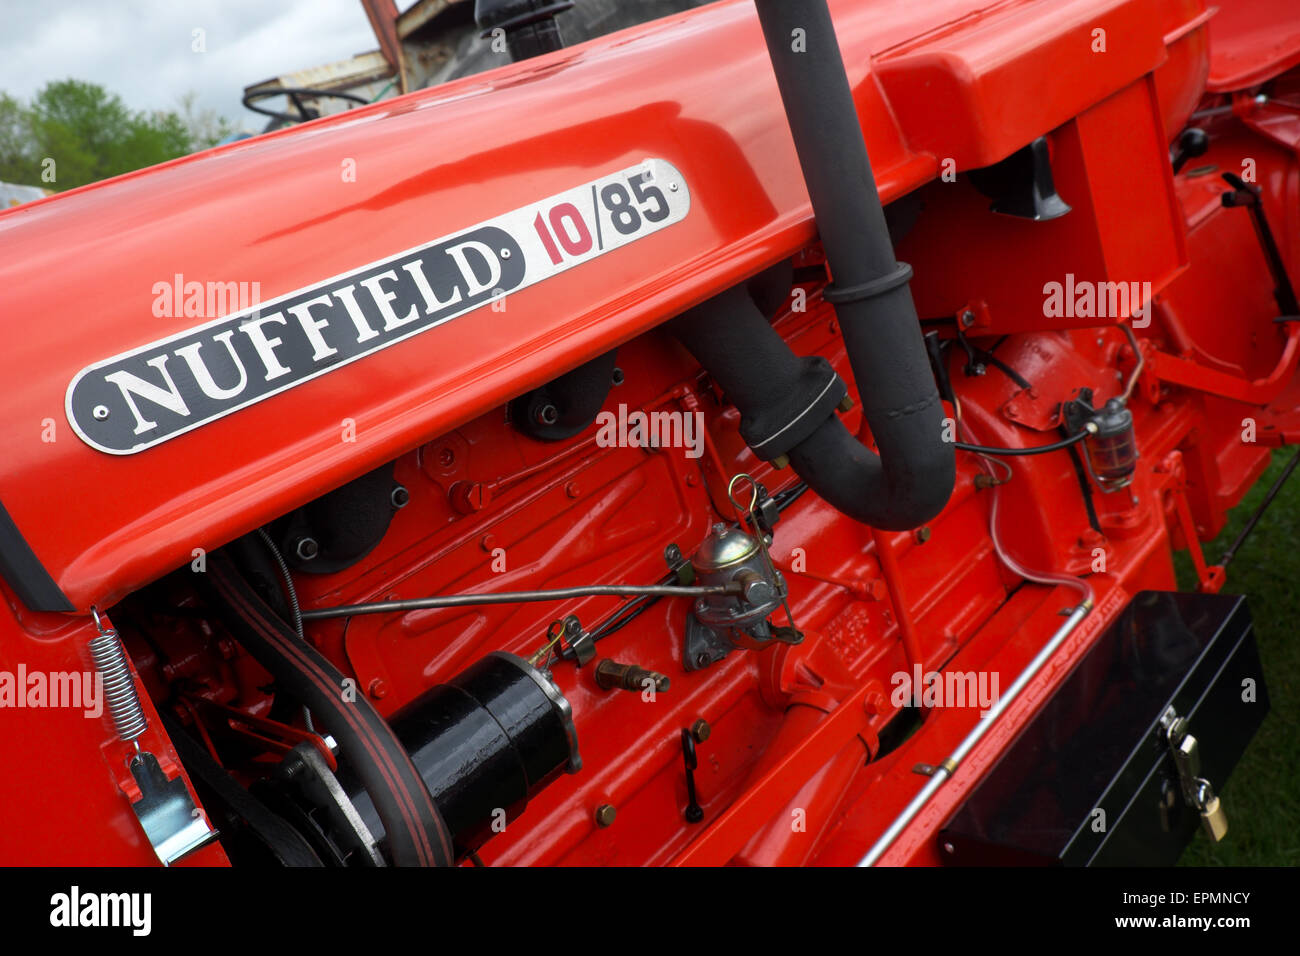 Nuffield 10/85 old vintage tractor - Stock Image